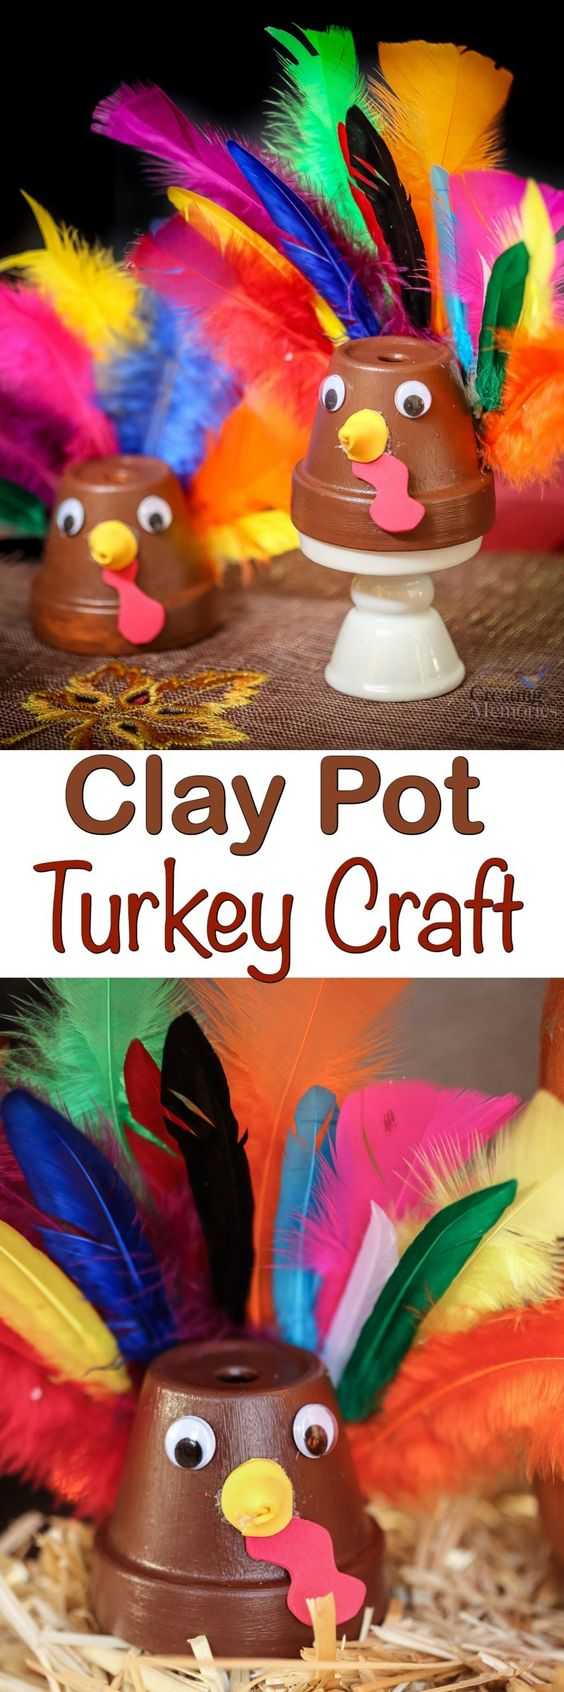 Easy Clay Pot Turkey Craft.